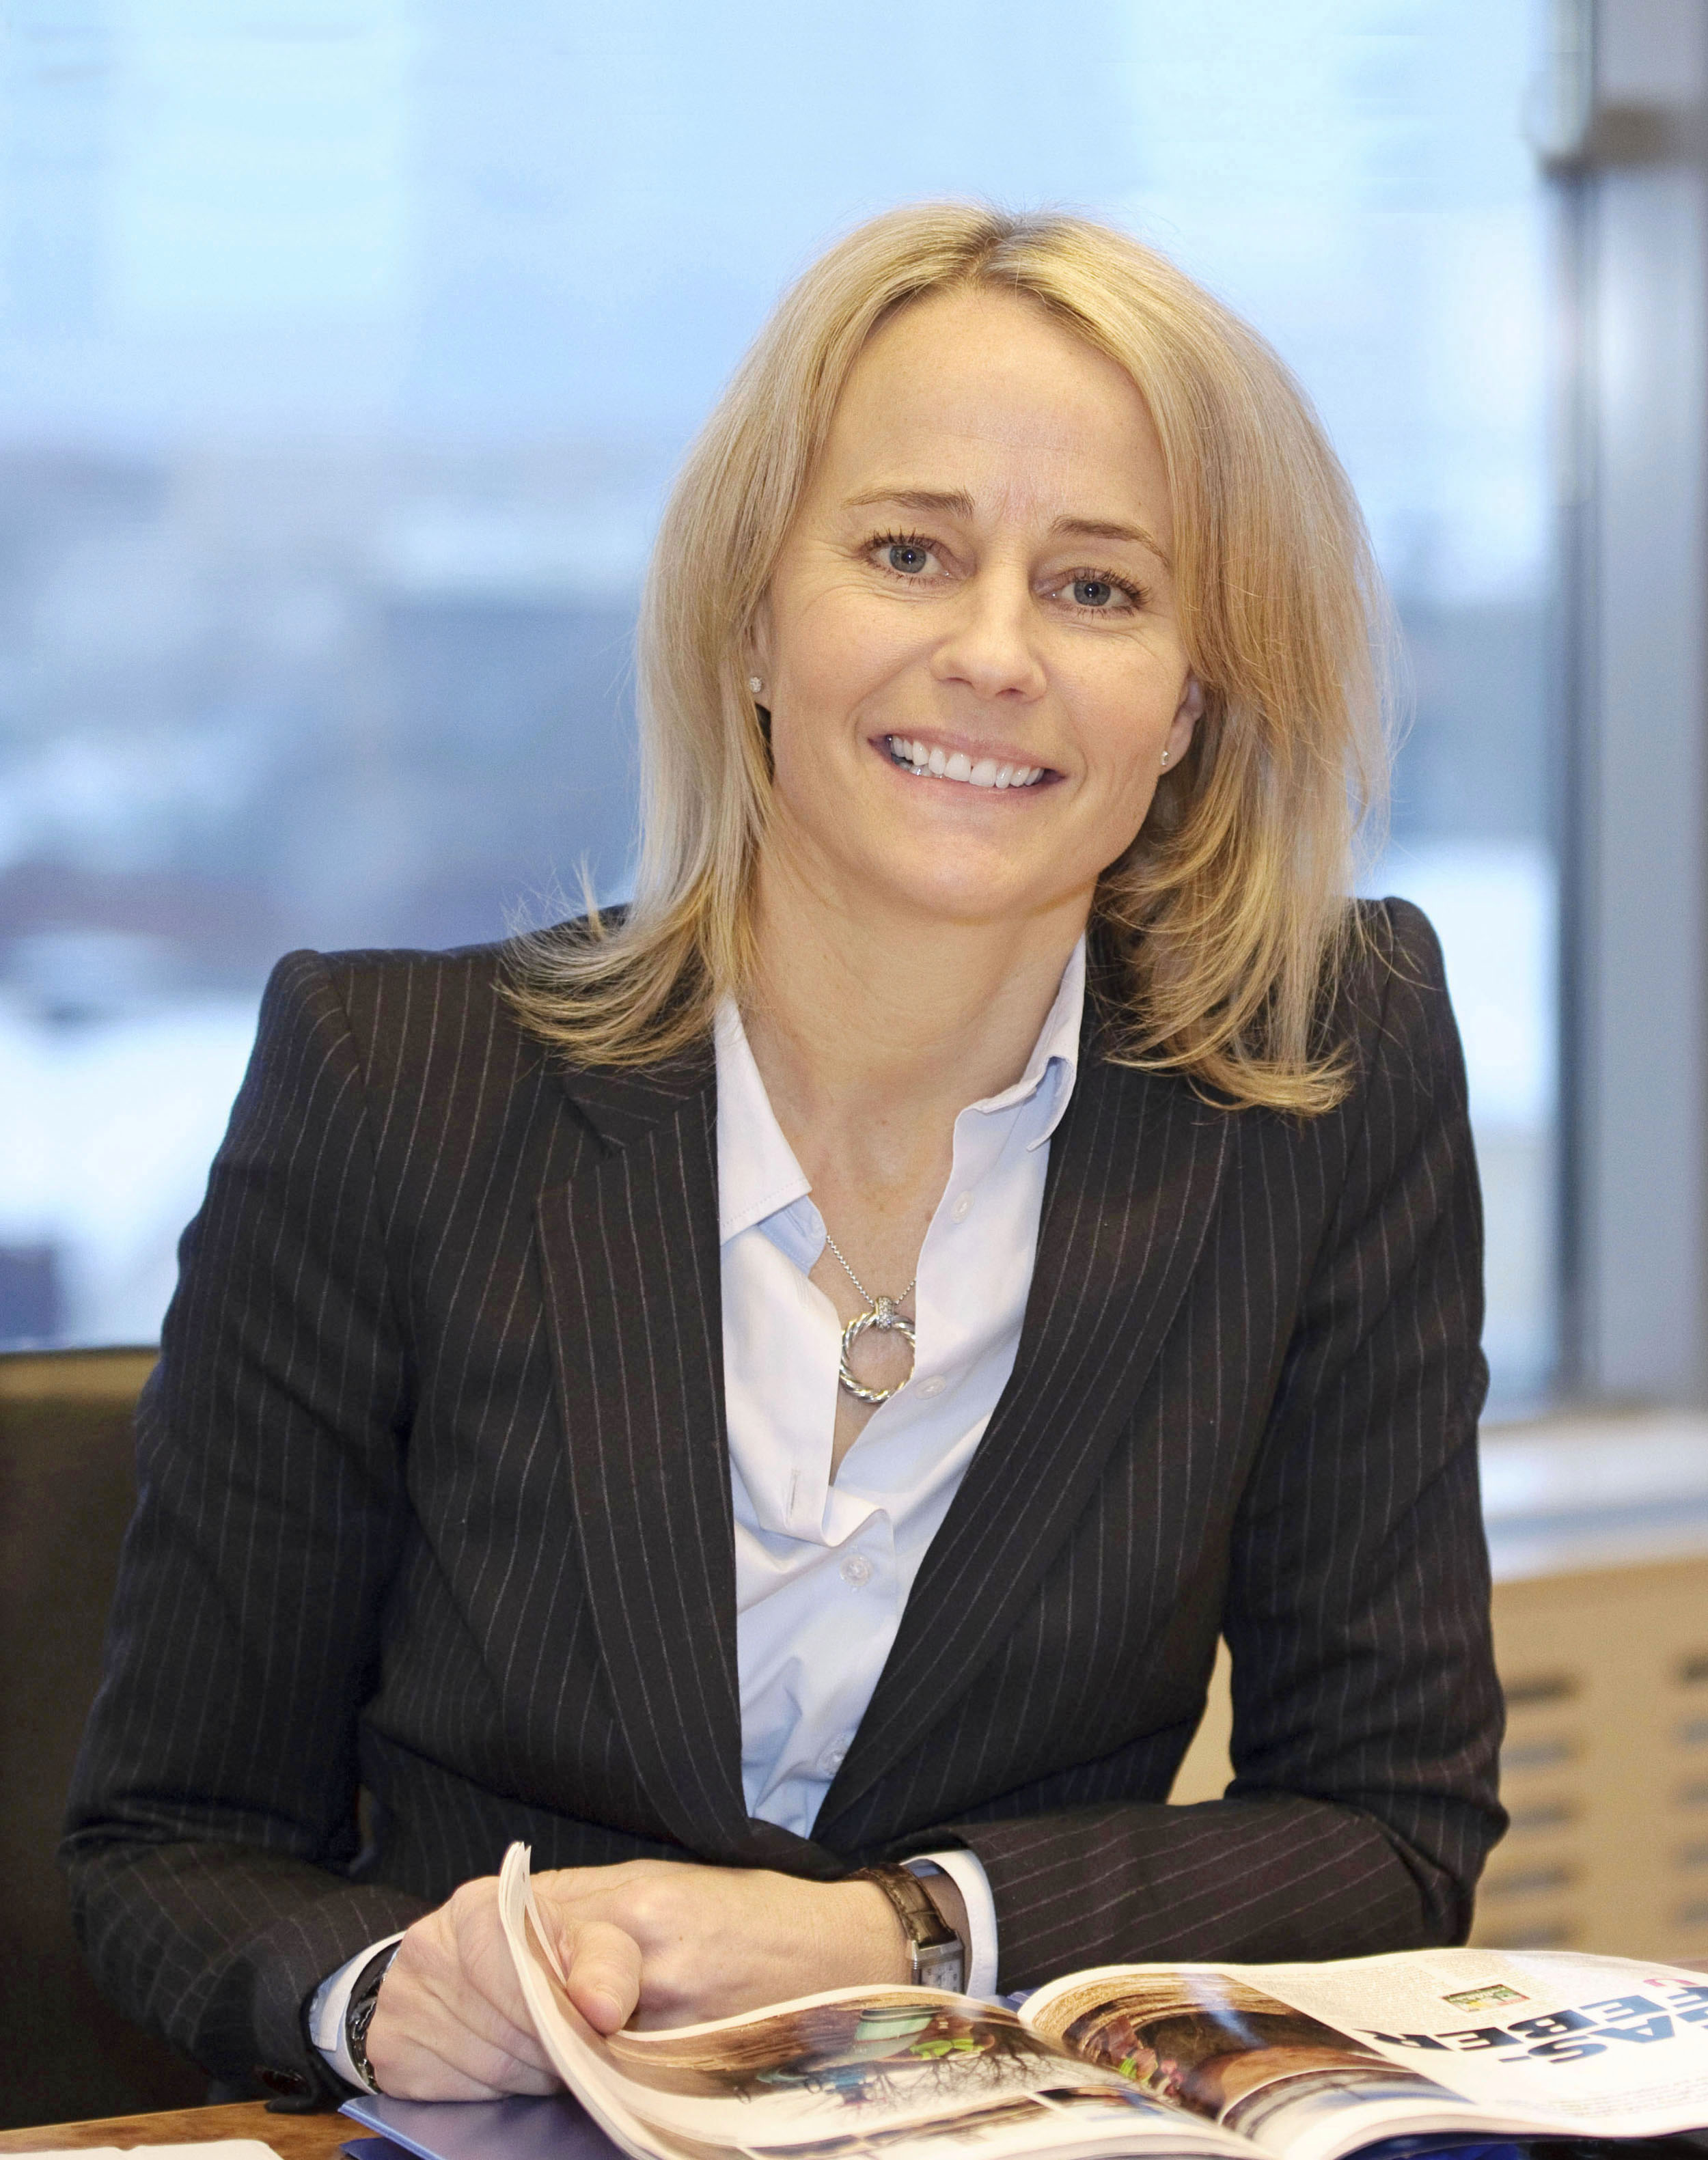 Karin Lepasoon new Head of Communications at Vattenfall